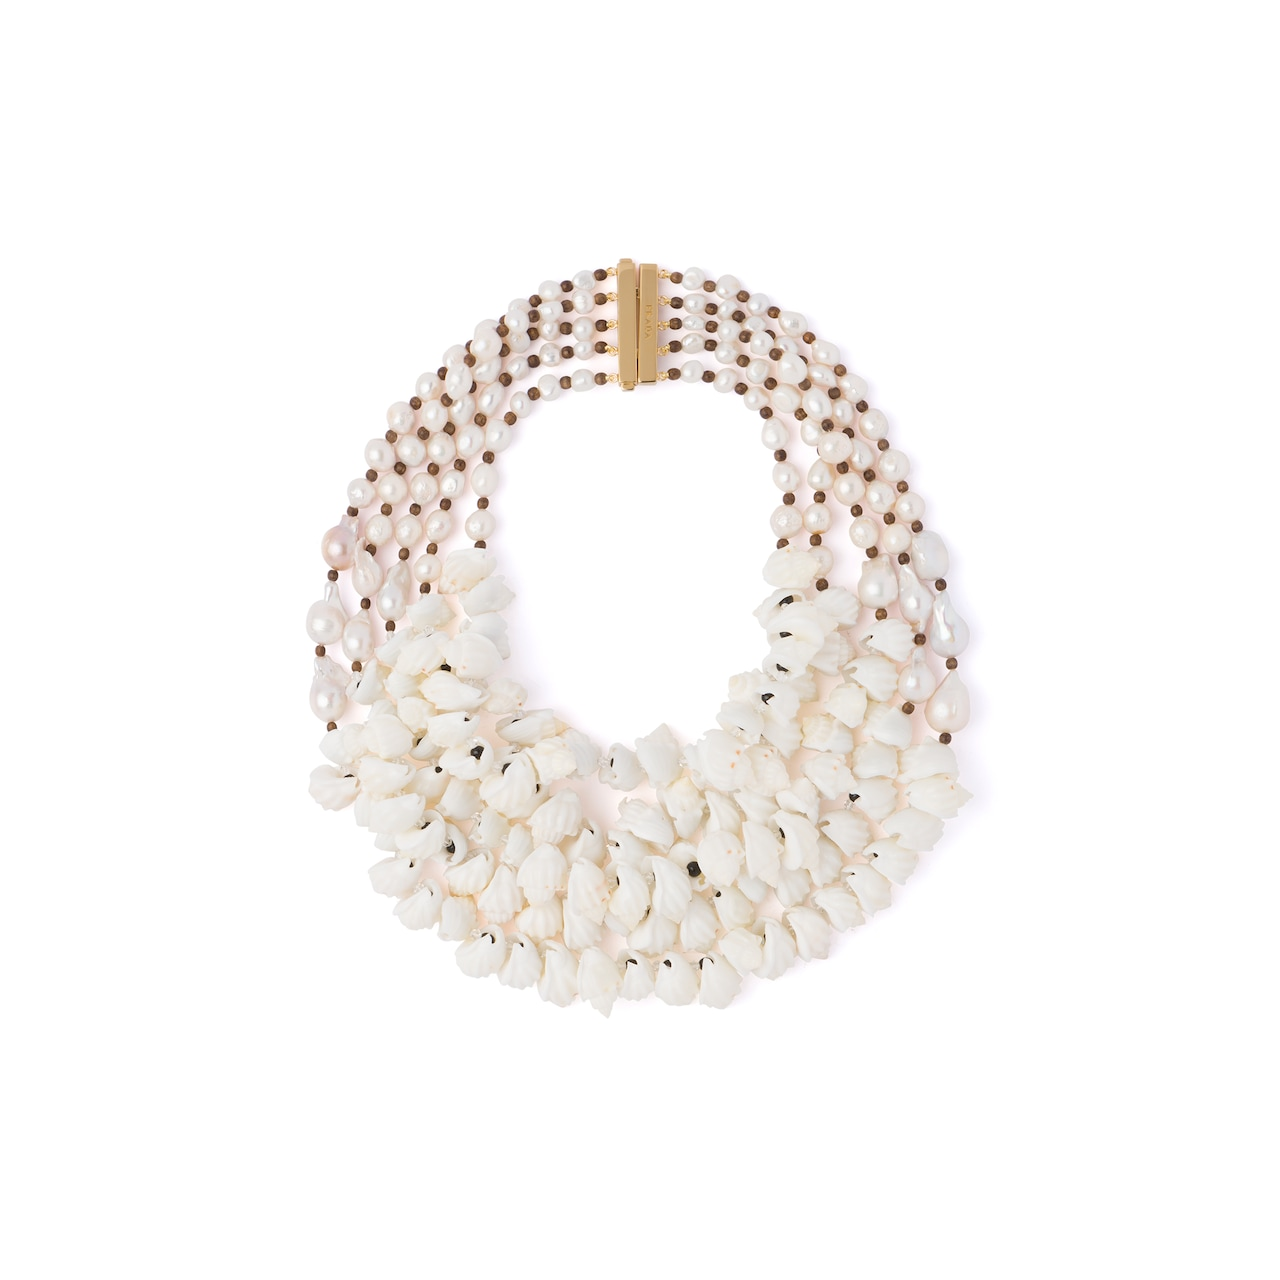 Prada Silver necklace with shells 1